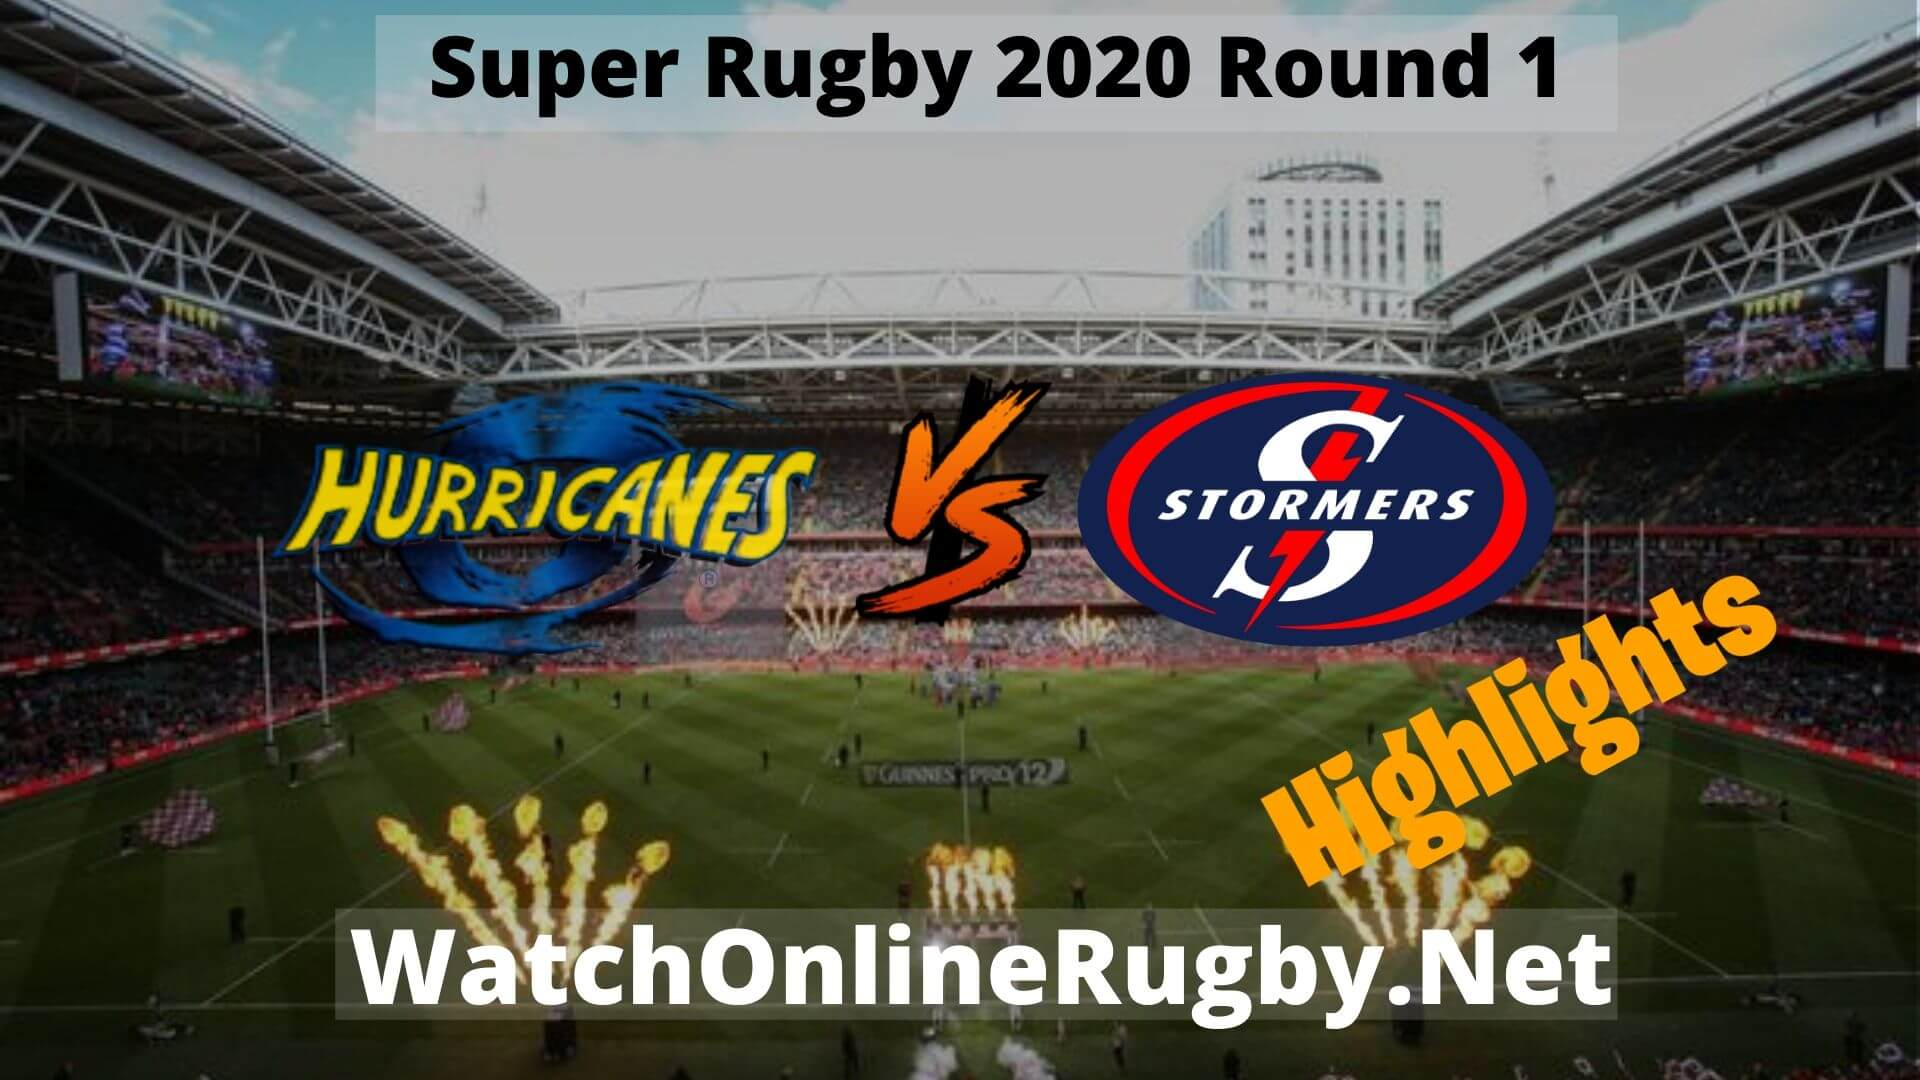 Hurricanes Vs Stormers Highlights Super Rugby 2020 Round 1